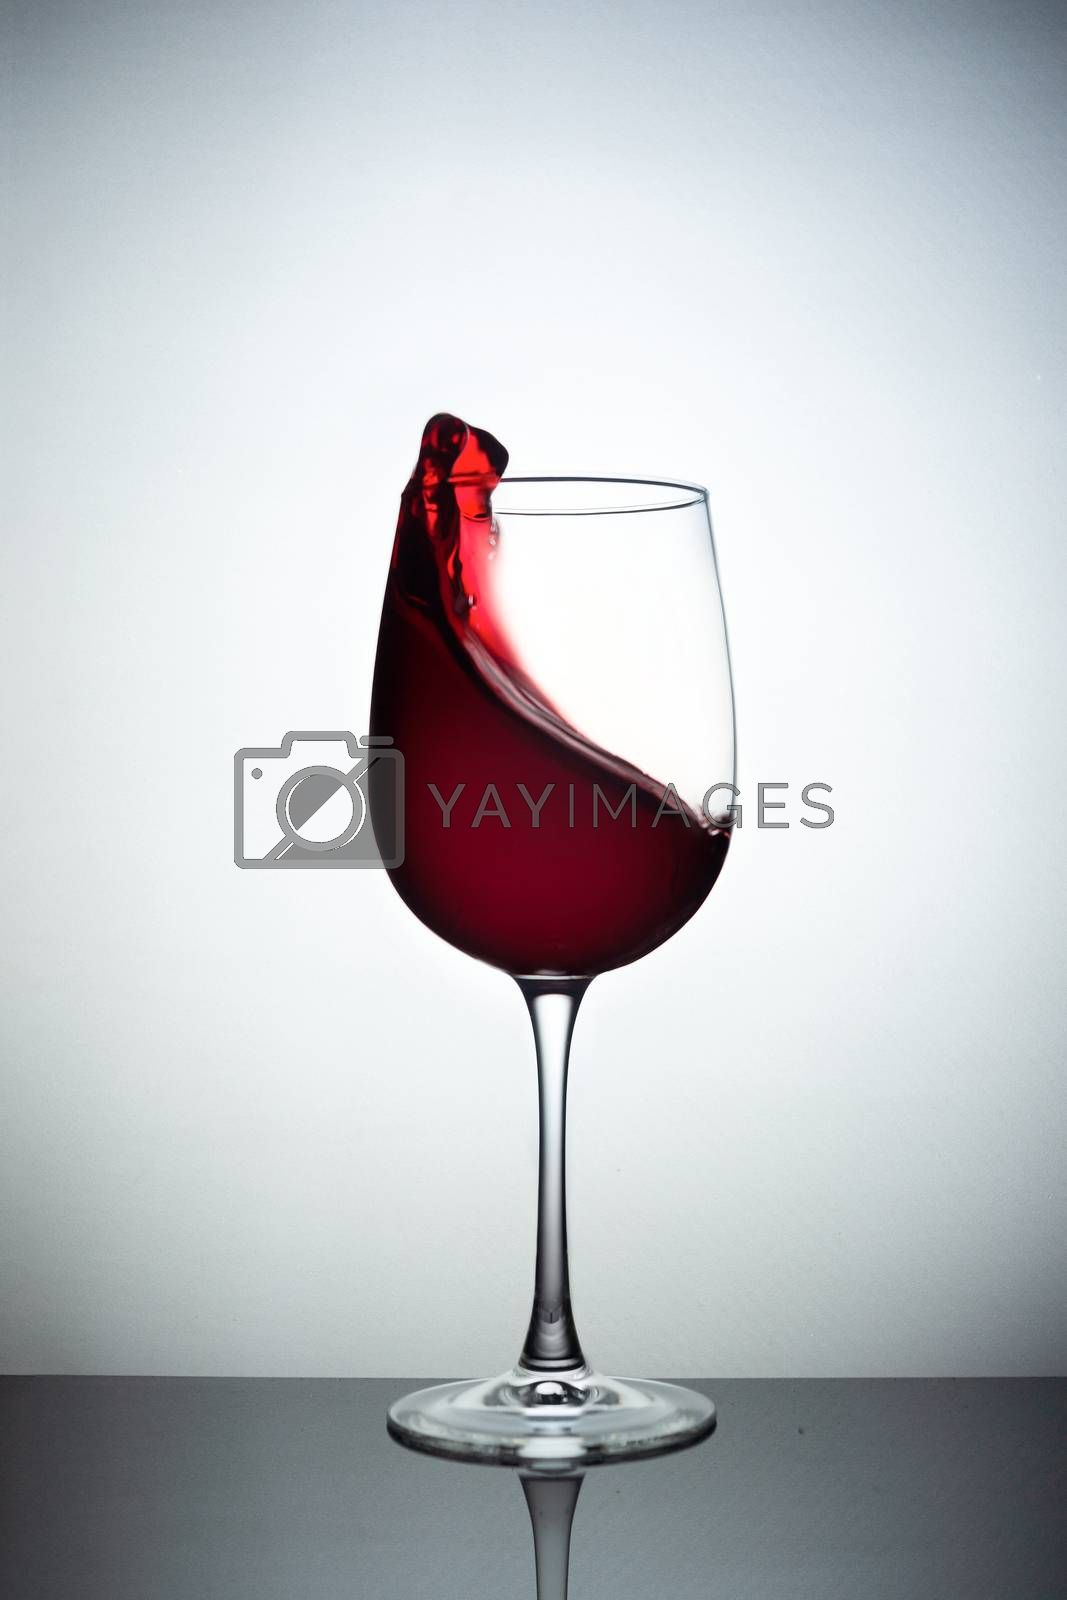 Creative photo of wine glass with storm in a glass on white background. A wine glass filled wine and a wave of wine flies from a wine glass. Wine glass stay on black glass sheet. Stock liquid motion photo.